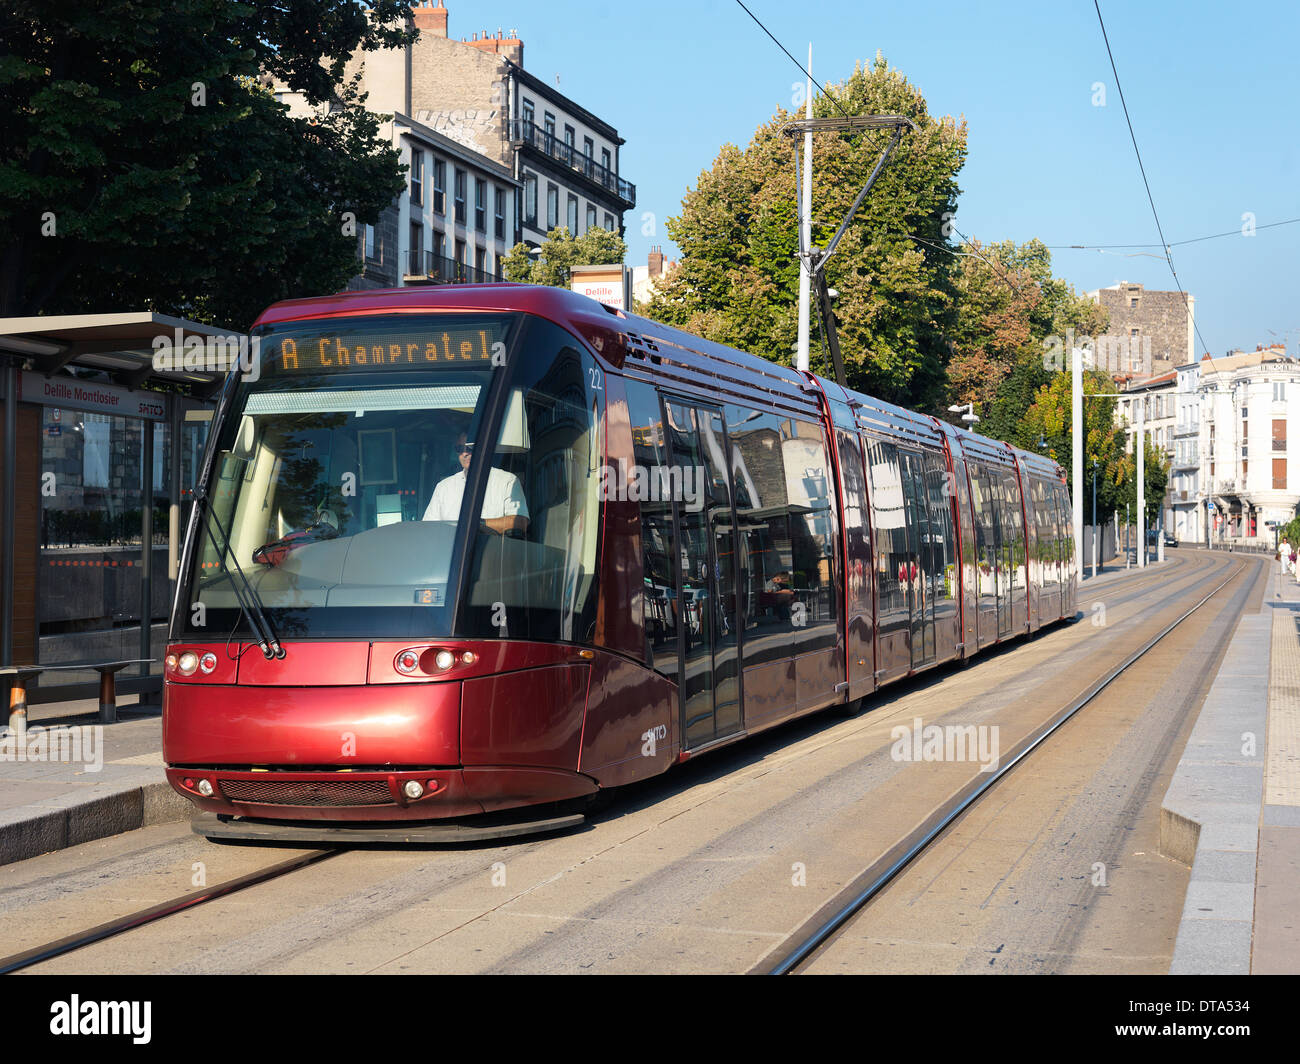 clermont ferrand france tram at the station delille. Black Bedroom Furniture Sets. Home Design Ideas